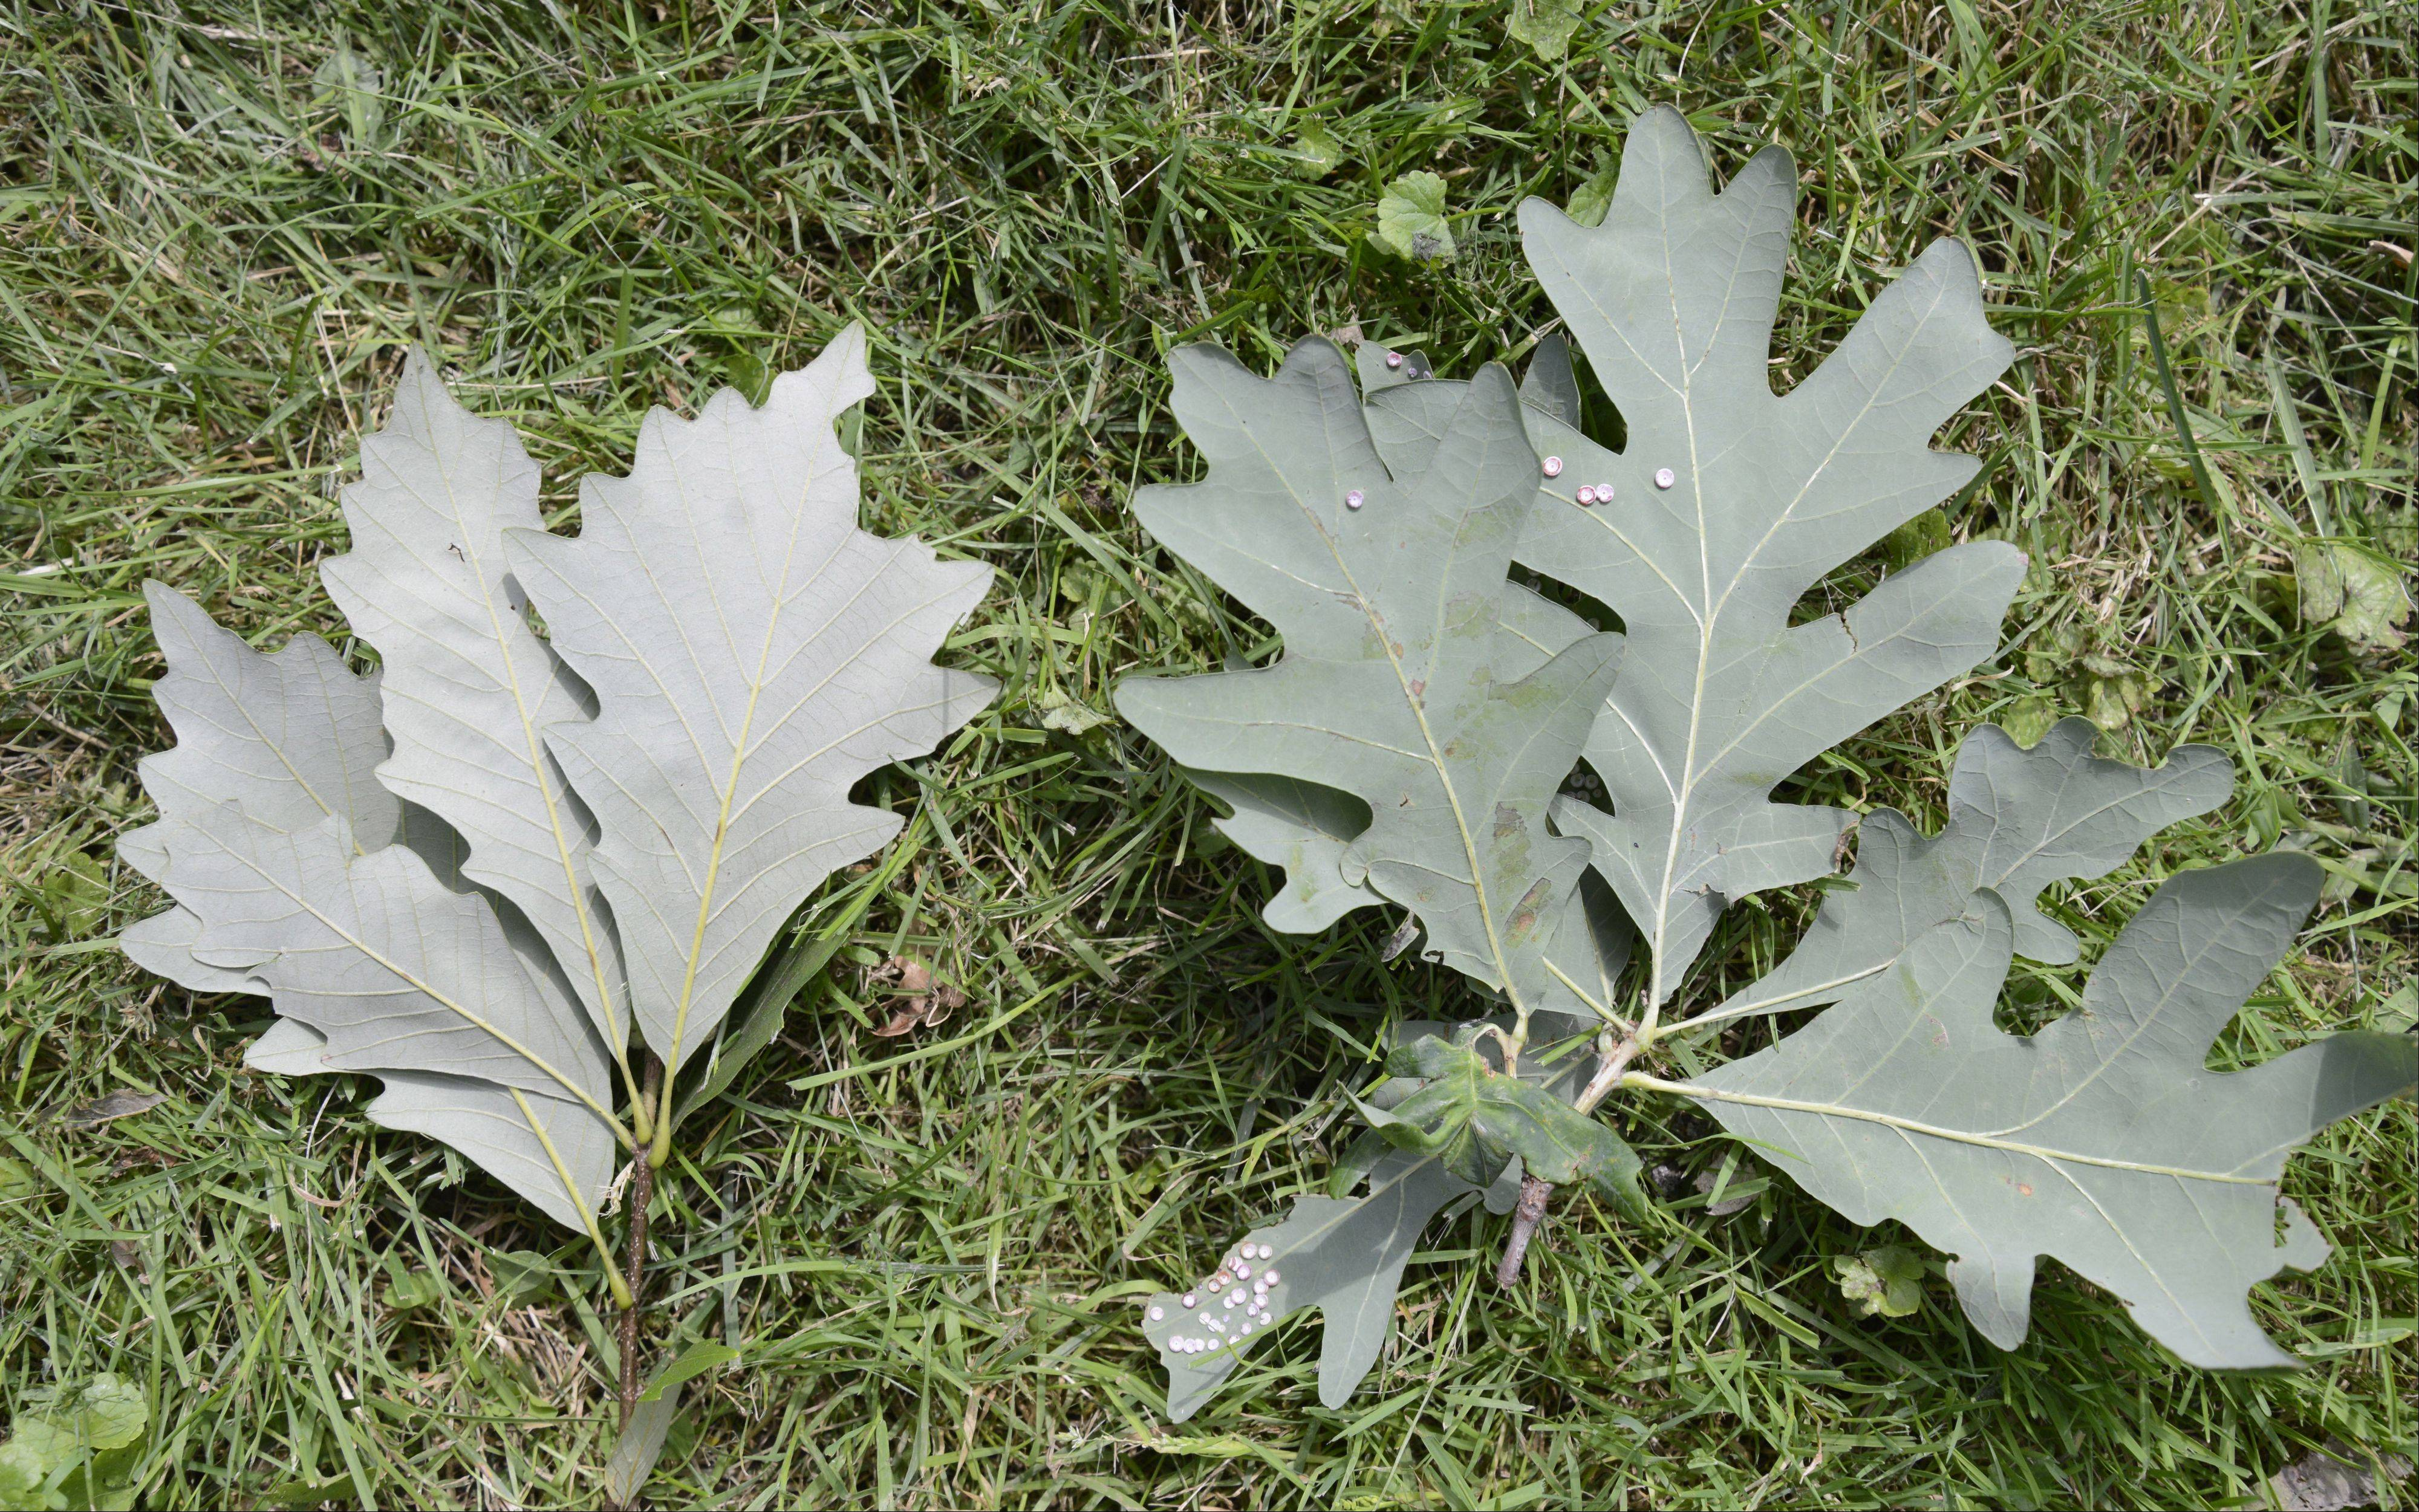 The undersides of swamp oak leaves, left, and white oak leaves are much brighter than the top part of the leaves. The underside of the swamp white oak leaves are also soft and fuzzy to the touch.